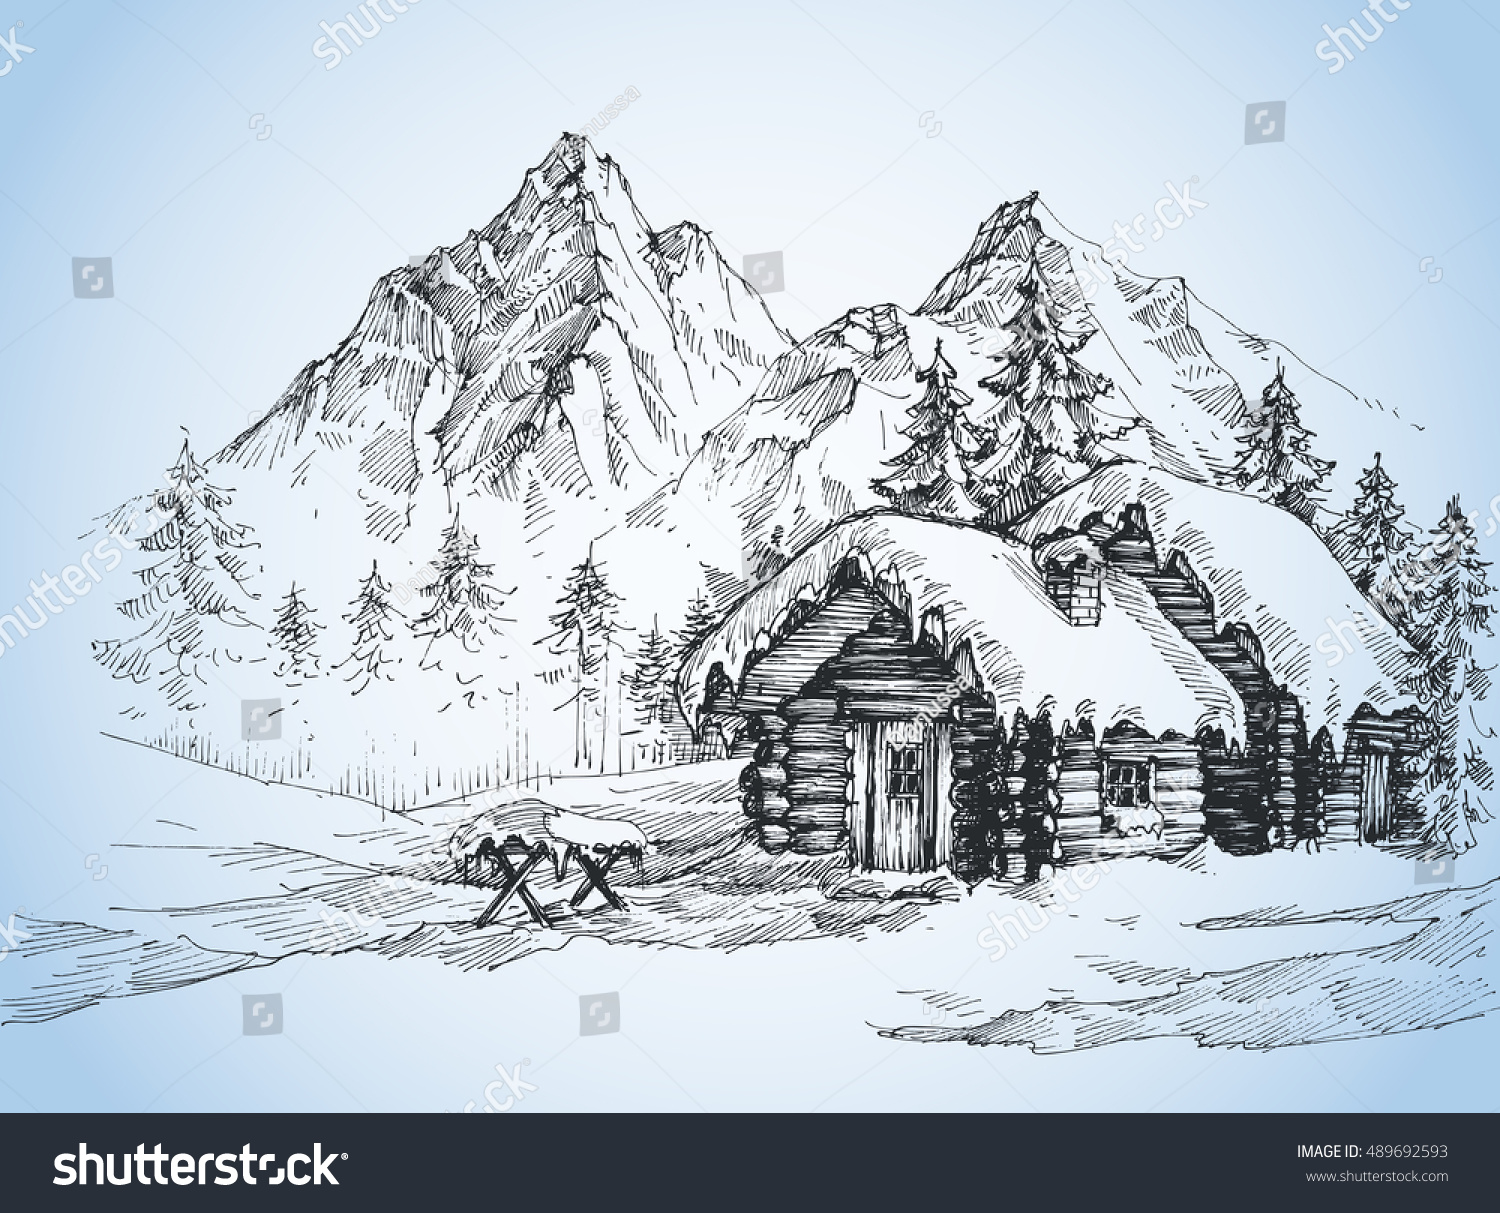 Christmas Background House In The Snow Landscape